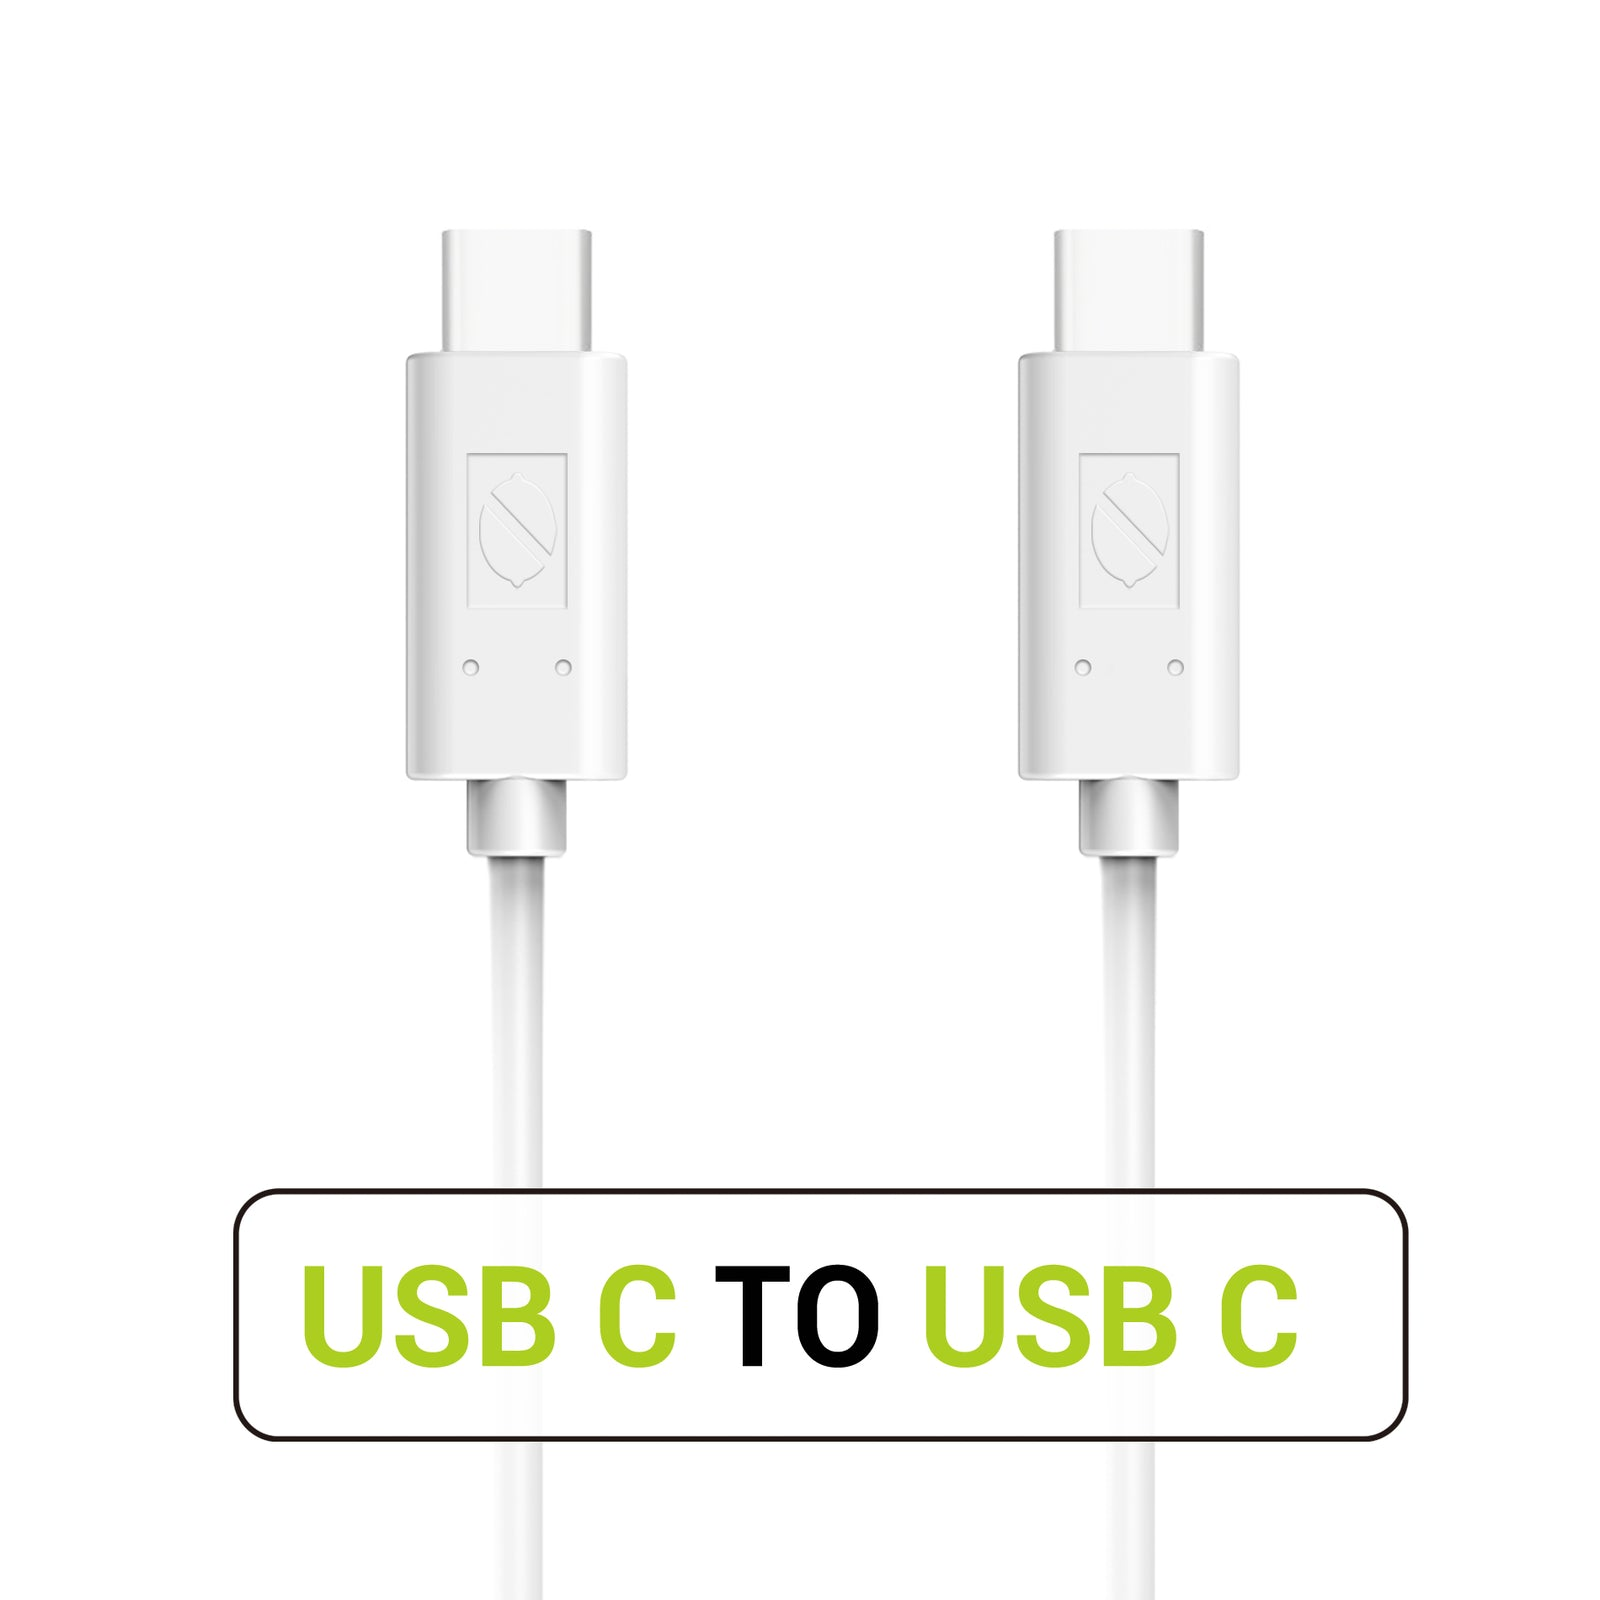 USB C to USB C 2.0 Cable 3.3ft/1m - White (1 Pack) [Shipping to US Only]